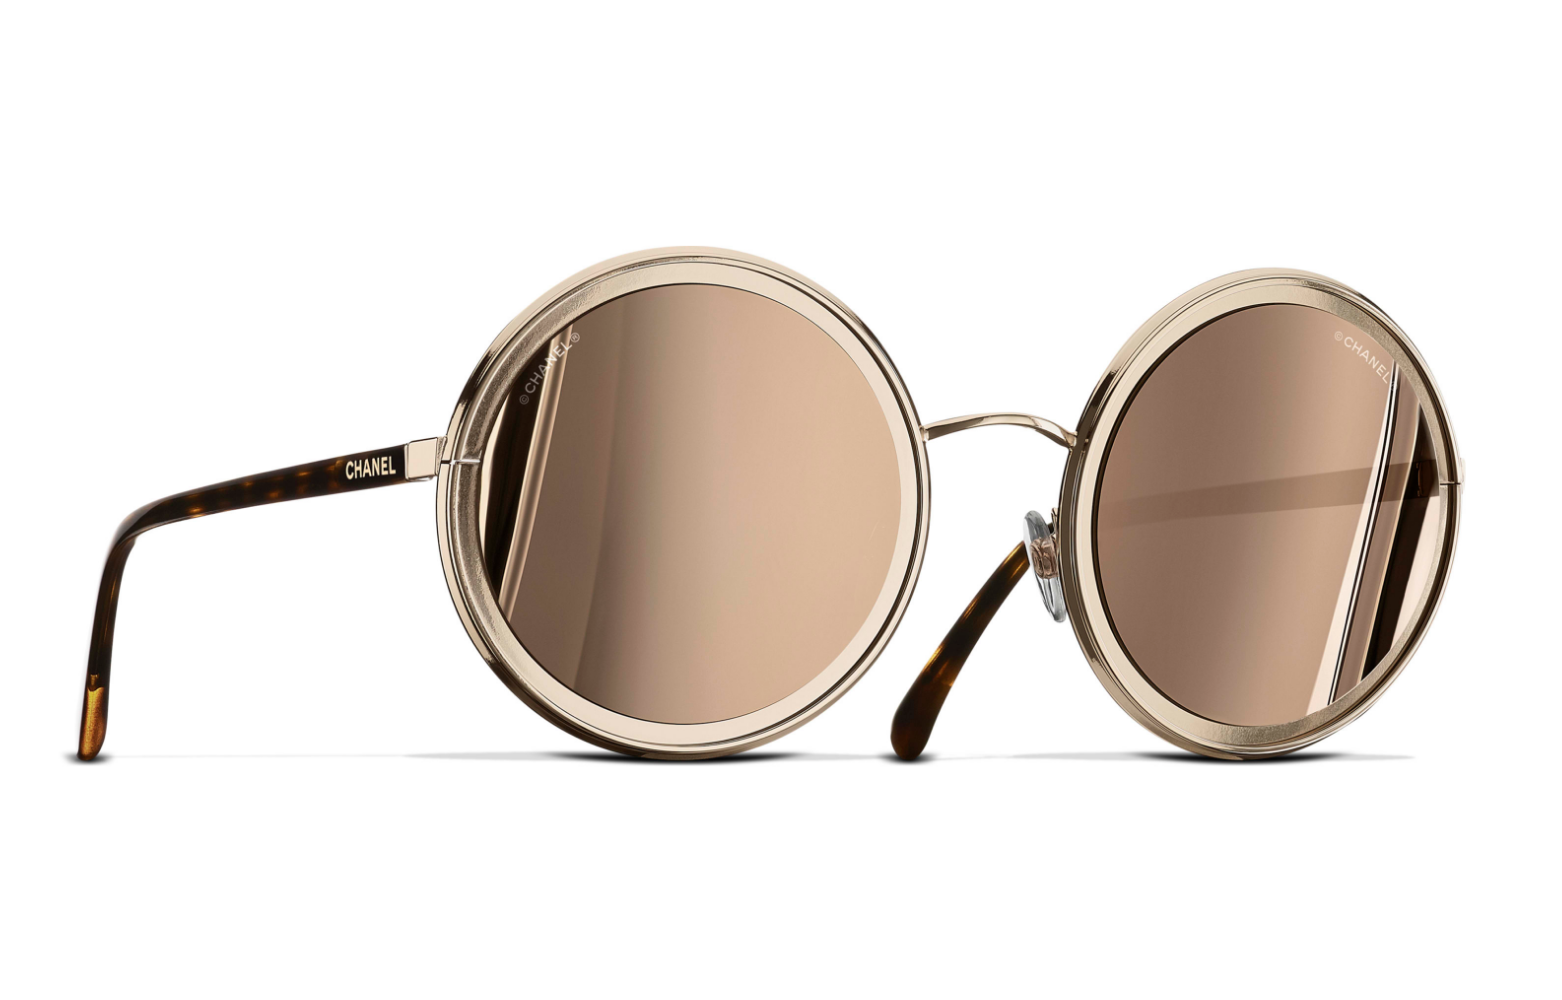 ROUND SUNGLASSES GOLD EYEWEAR | CHANEL